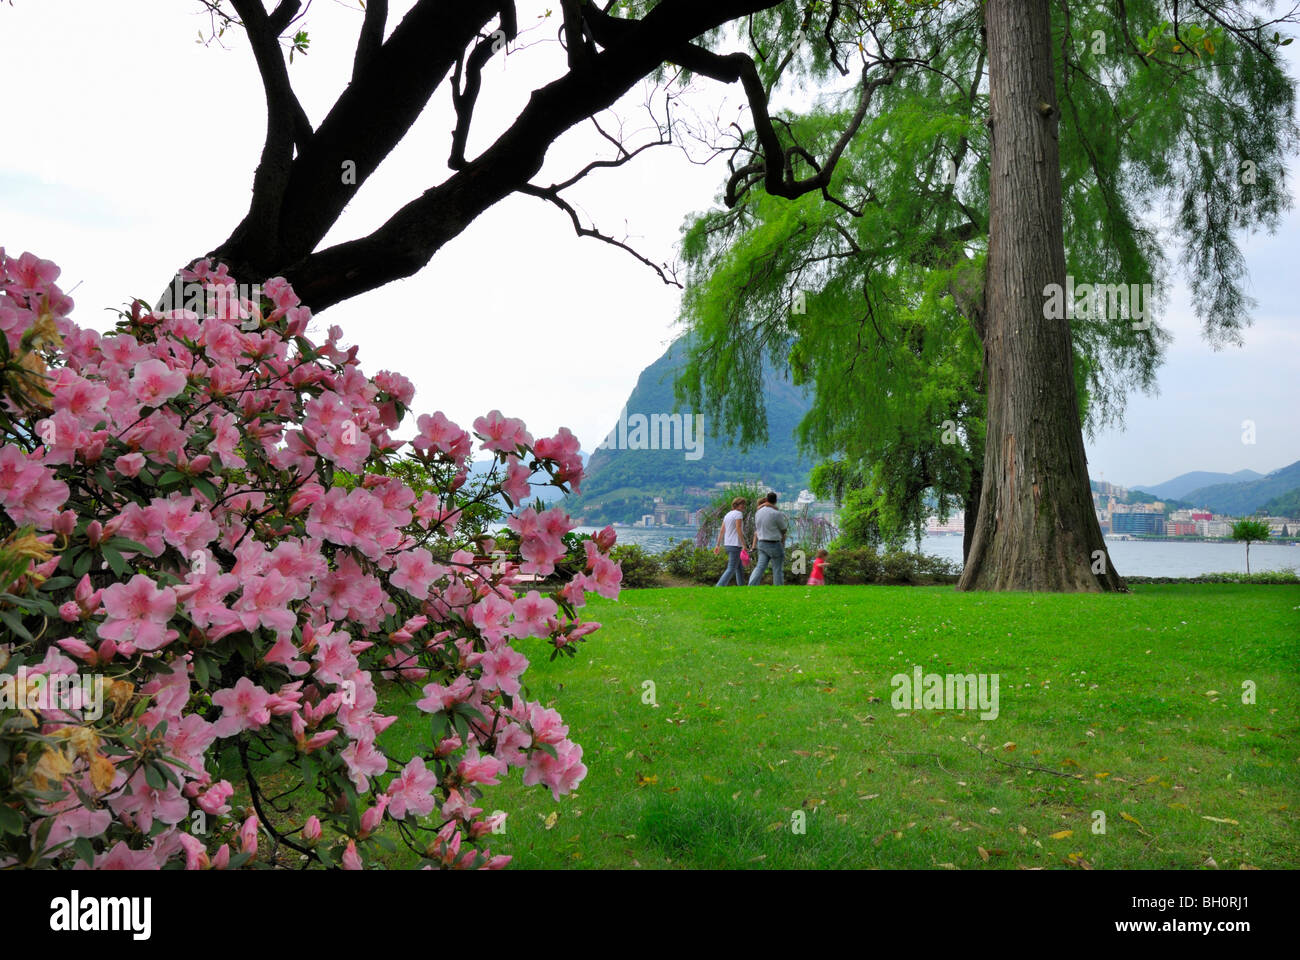 Family walking through city park of Lugano with rhododendron in the foreground, Lugano, Ticino, Switzerland Stock Photo